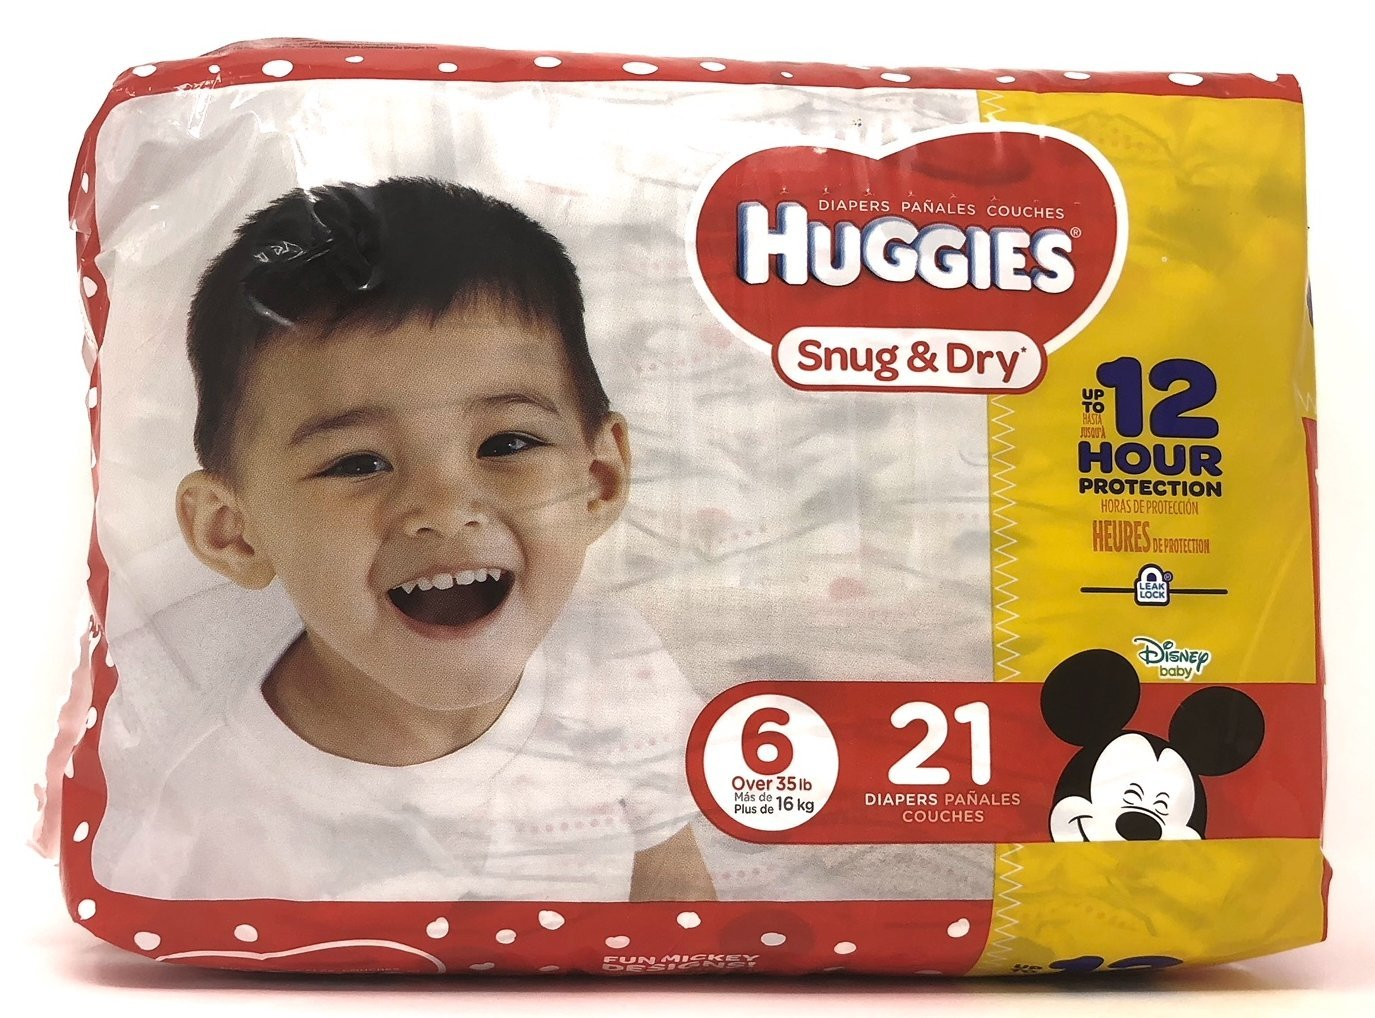 Diaper/Baby Wipe Travel Pack Bundle | Includes Huggies Snug & Dry Size 6 Disposable Diapers (21 Count) and Simply Clean Baby Wipes Resealable Container (32 Count) by Snug & Dry (Image #2)